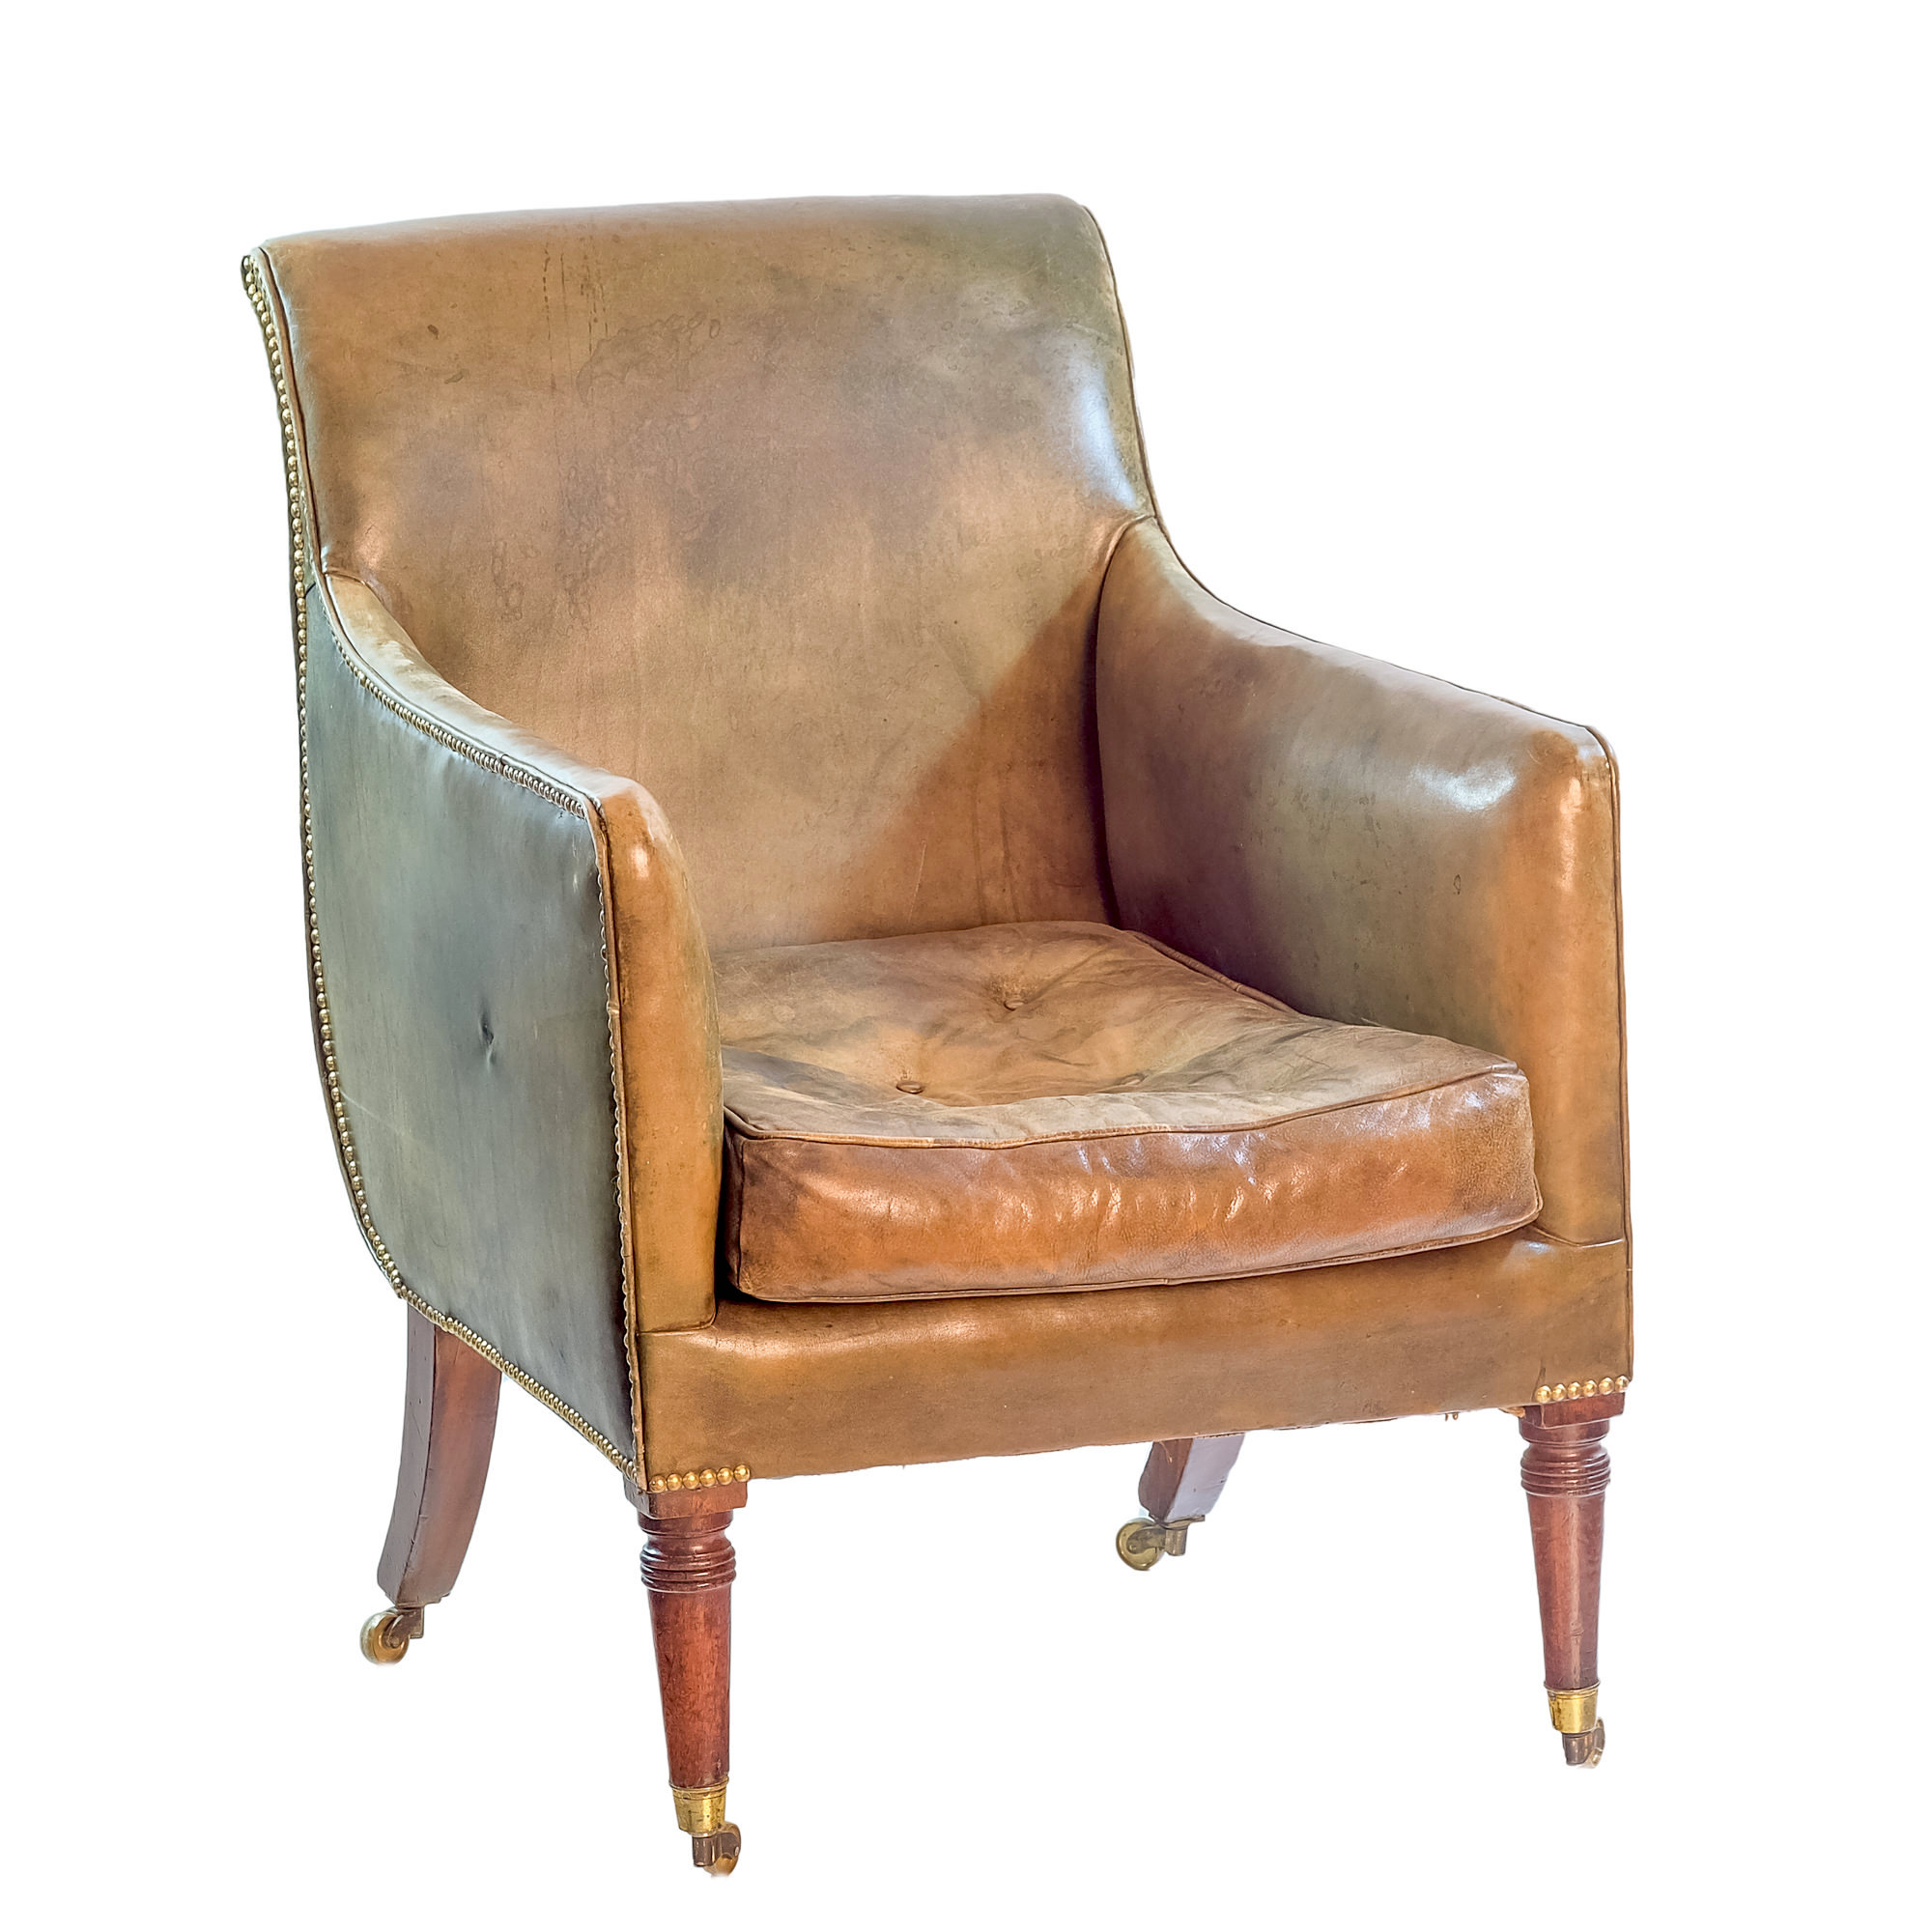 'Regency Period Mahogany and Green Leather Upholstered Drawing Room Chair Circa 1820'